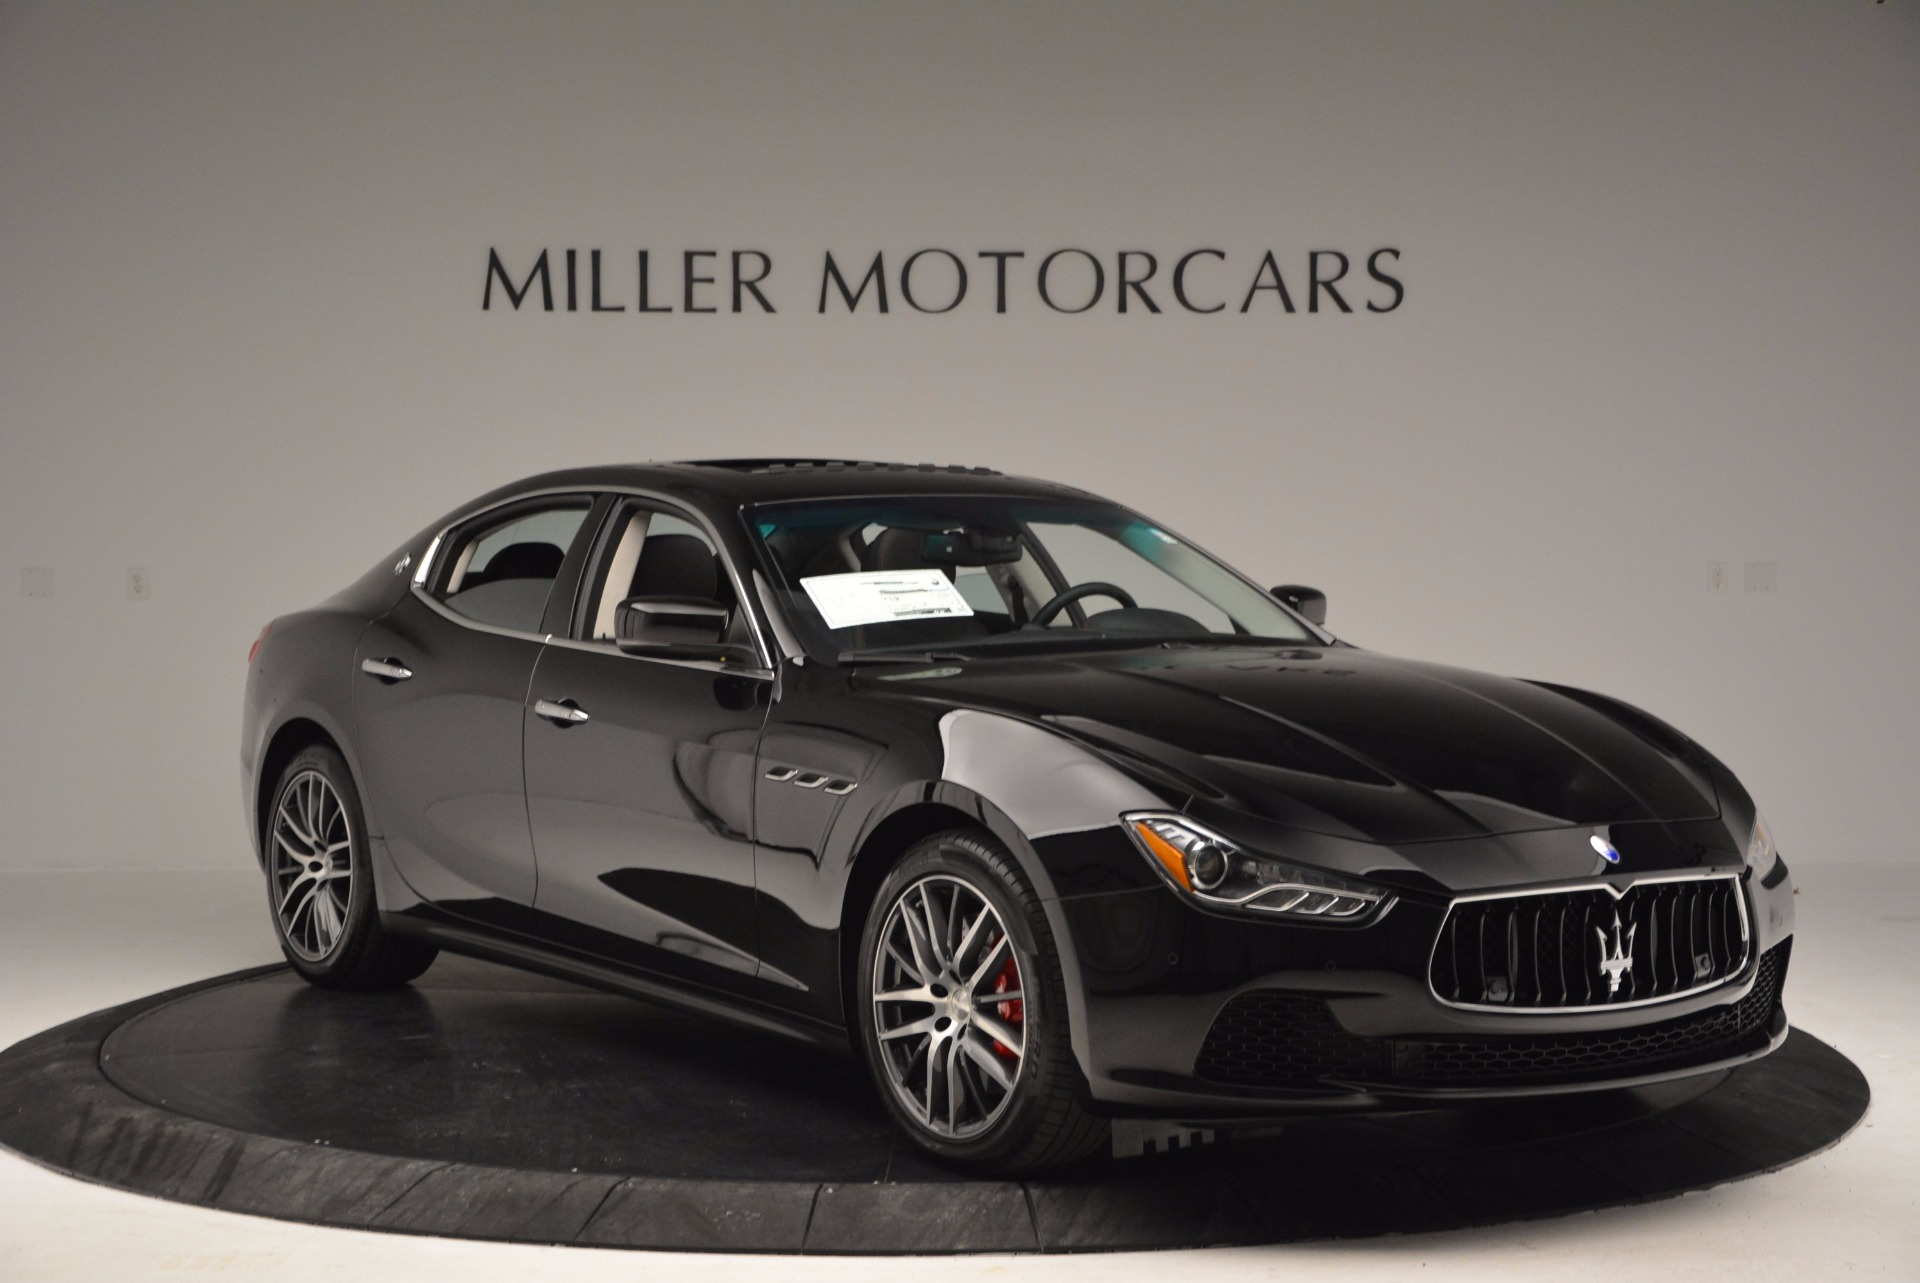 New 2017 Maserati Ghibli S Q4 For Sale In Greenwich, CT 1038_p10